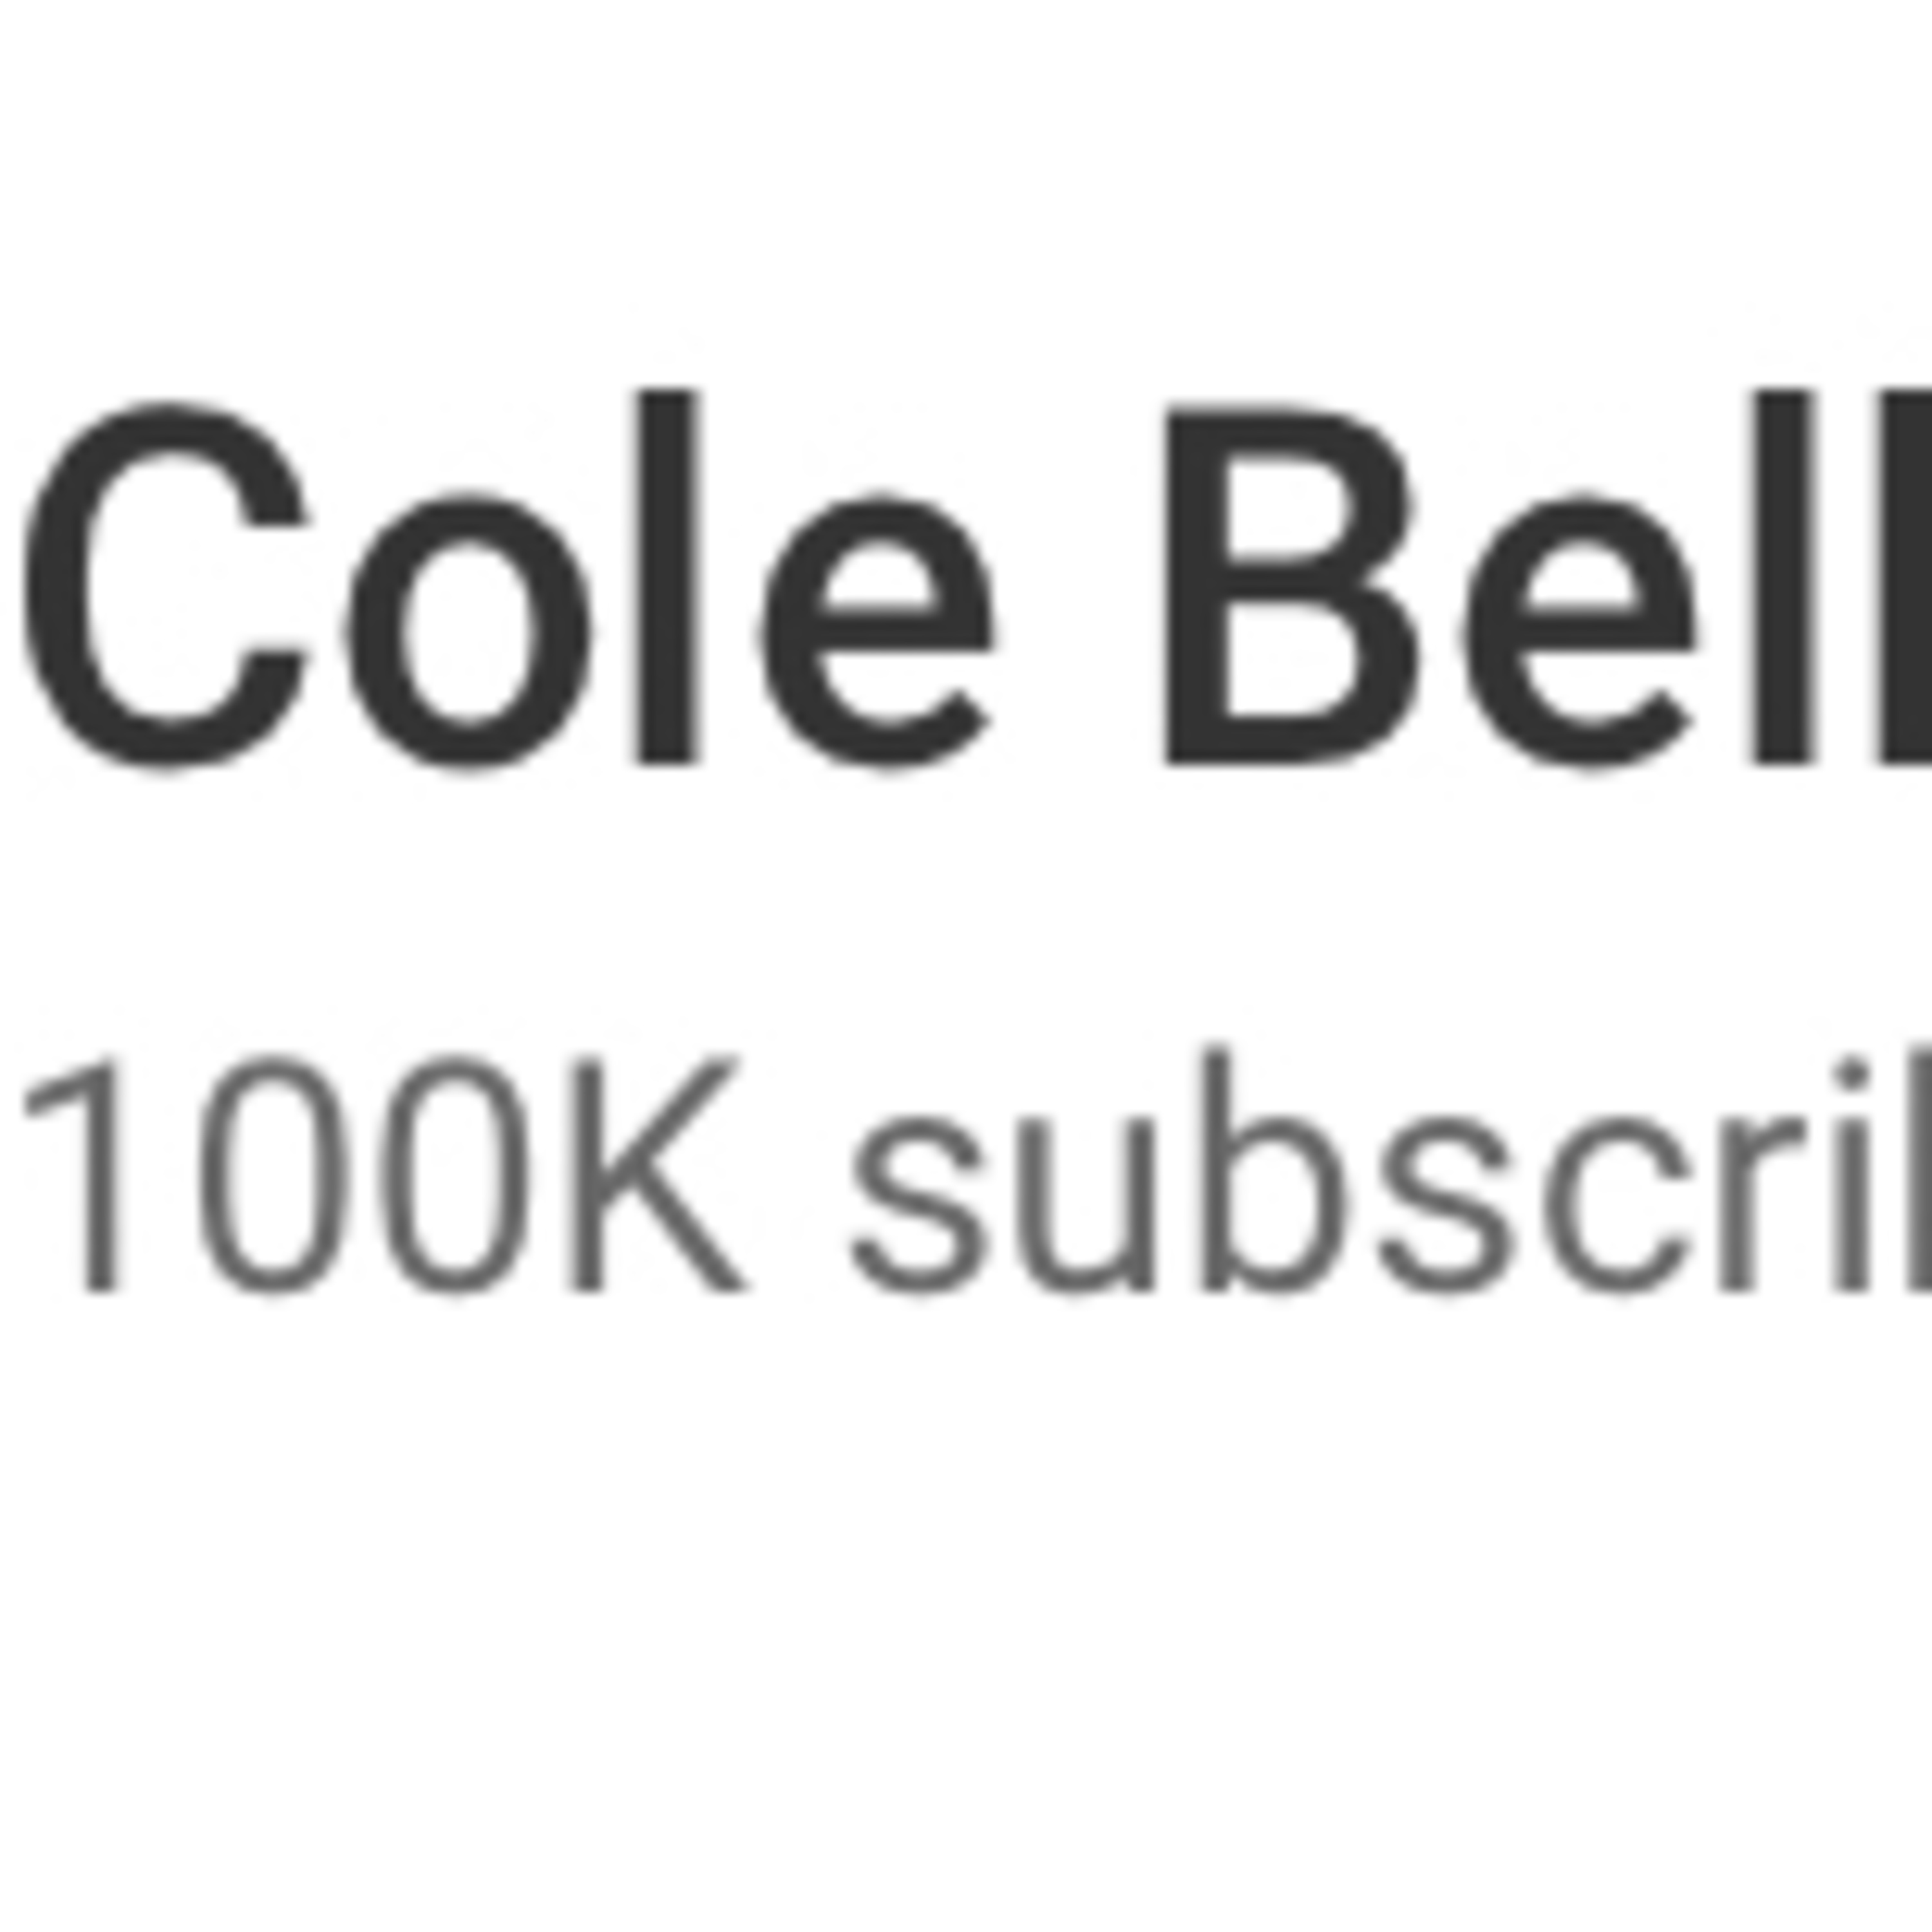 I hit 100,000 subscribers on YouTube!!!